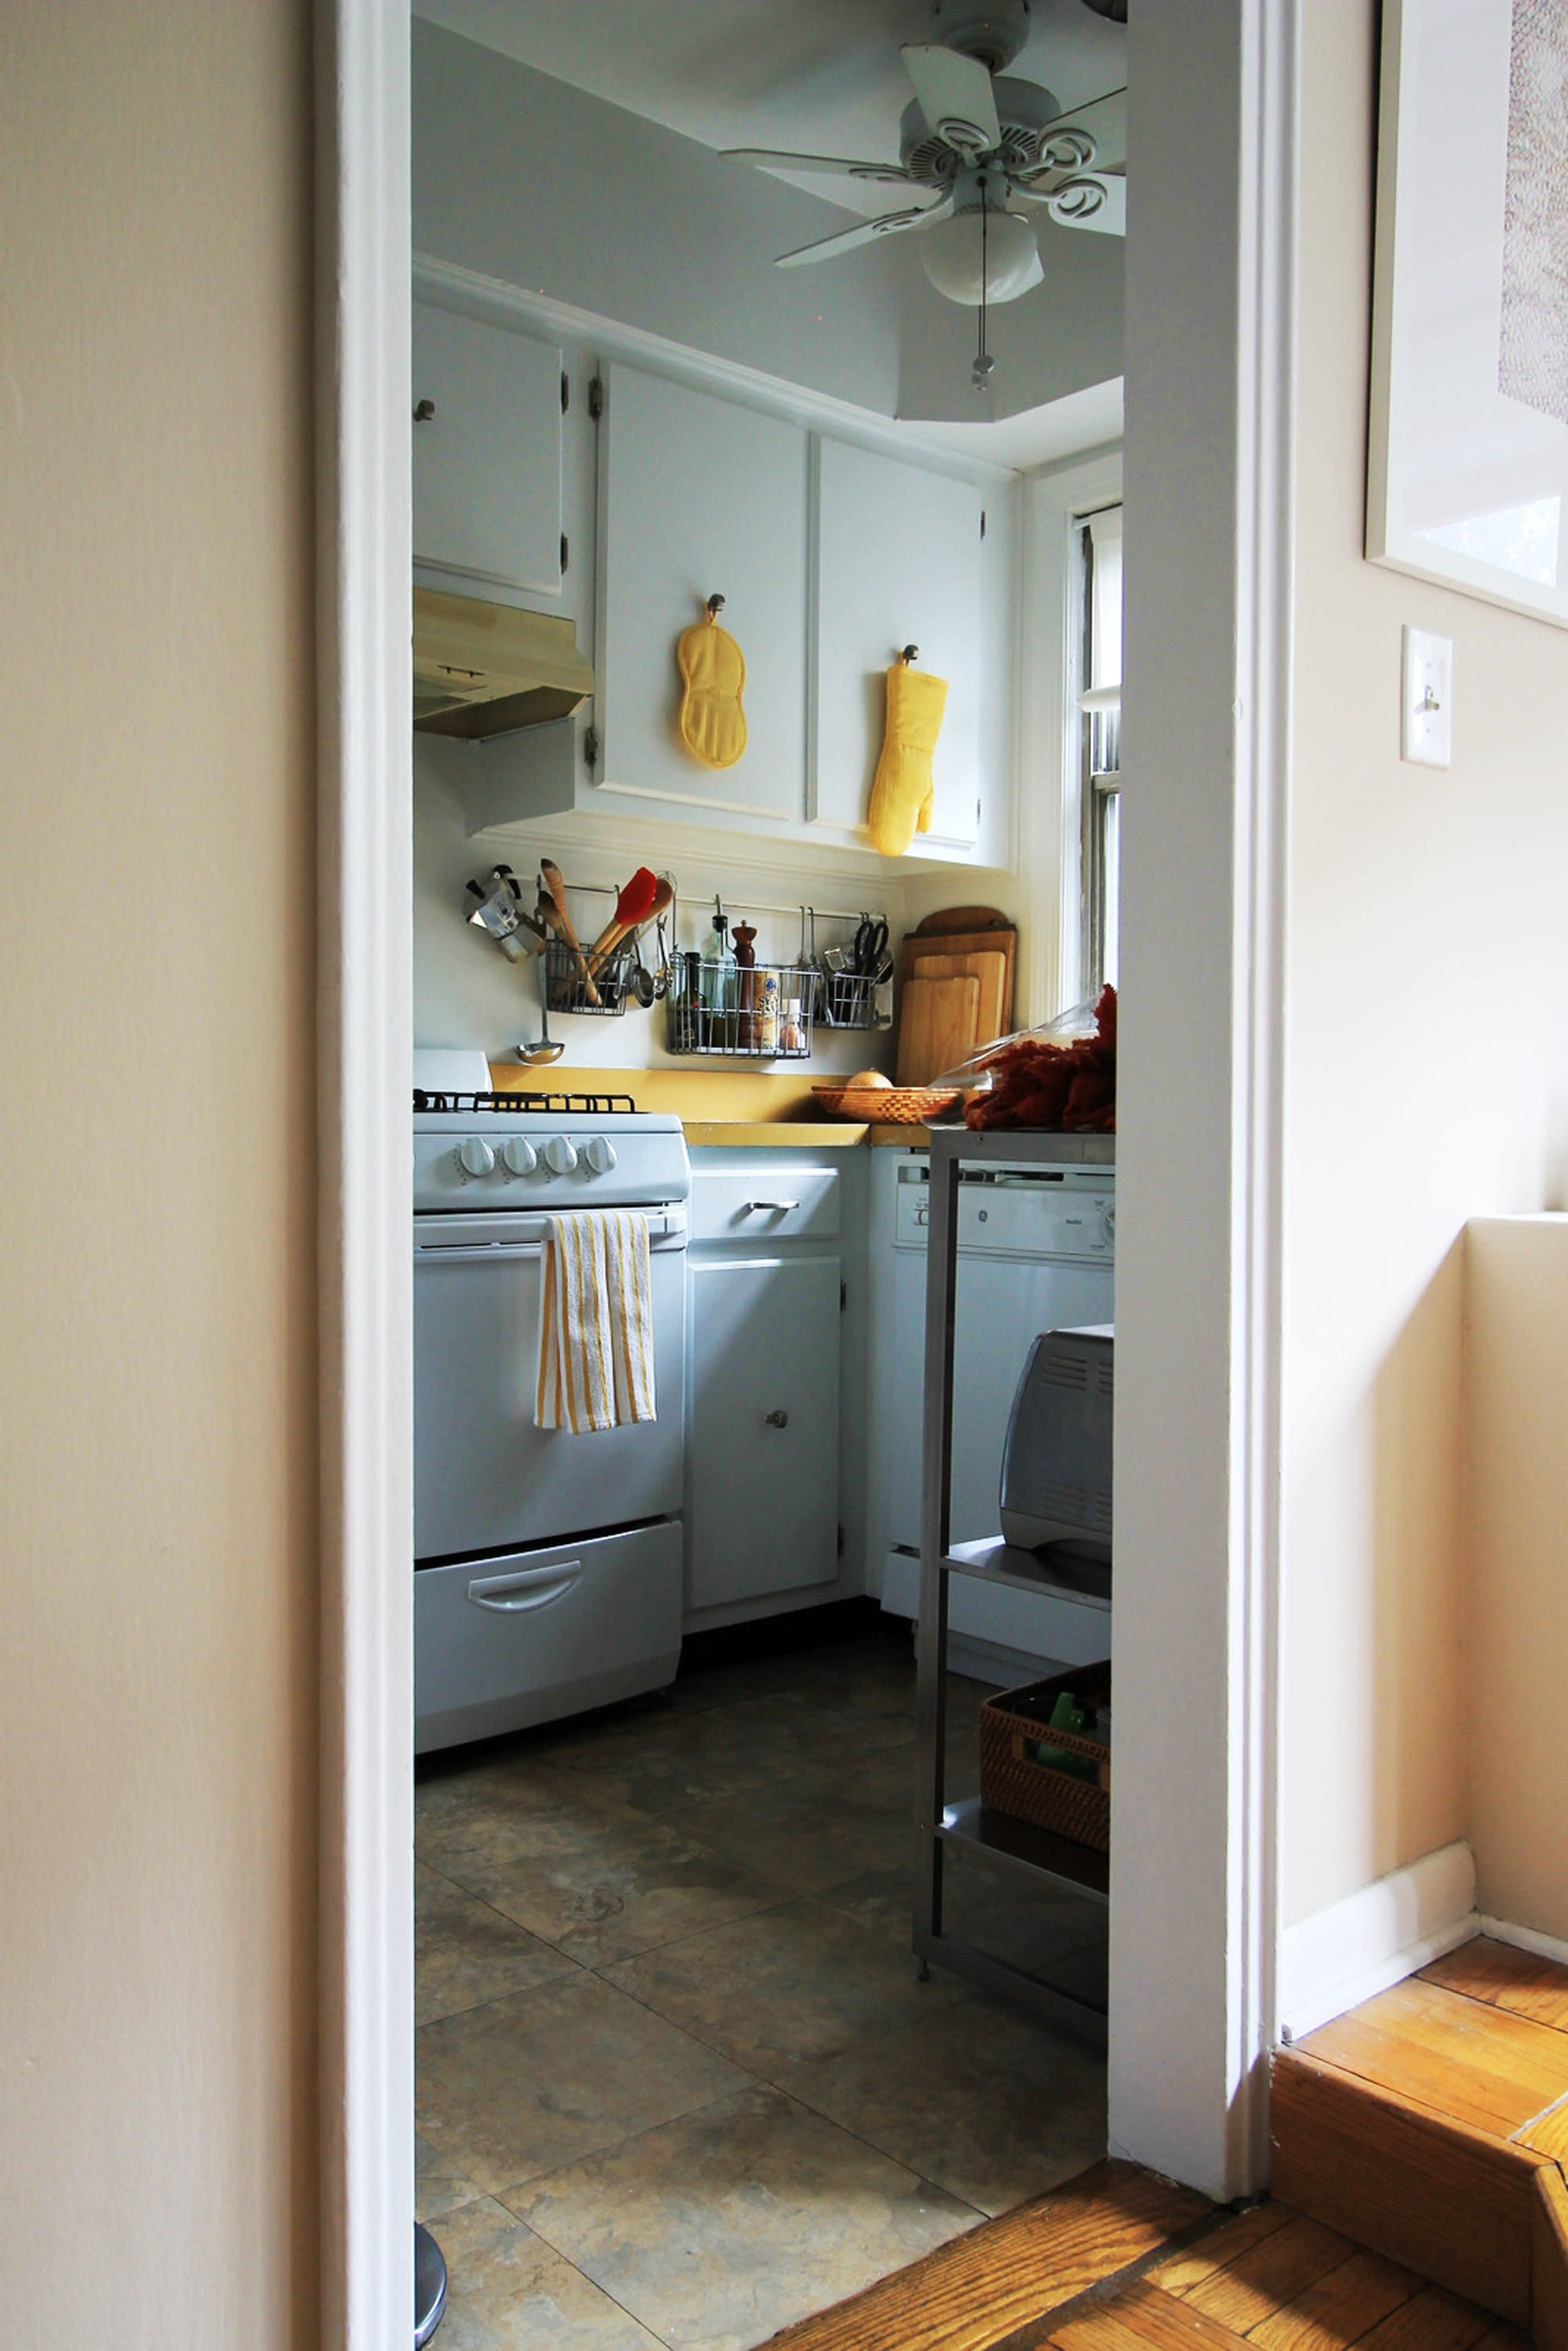 4 Pro Designers Share Their Best Tricks for Improving a Rental ... Mismatched Kitchen Cabinets With Addition on kitchen with mismatched appliances, different styles of kitchen cabinets, mixed kitchen cabinets, different colored kitchen cabinets, kitchen with mixed wood colors, kitchens with painted and stained cabinets, kitchen addition ideas, mixed wood cabinets, kitchen with mismatched tile, kitchen cabinet glass front doors,